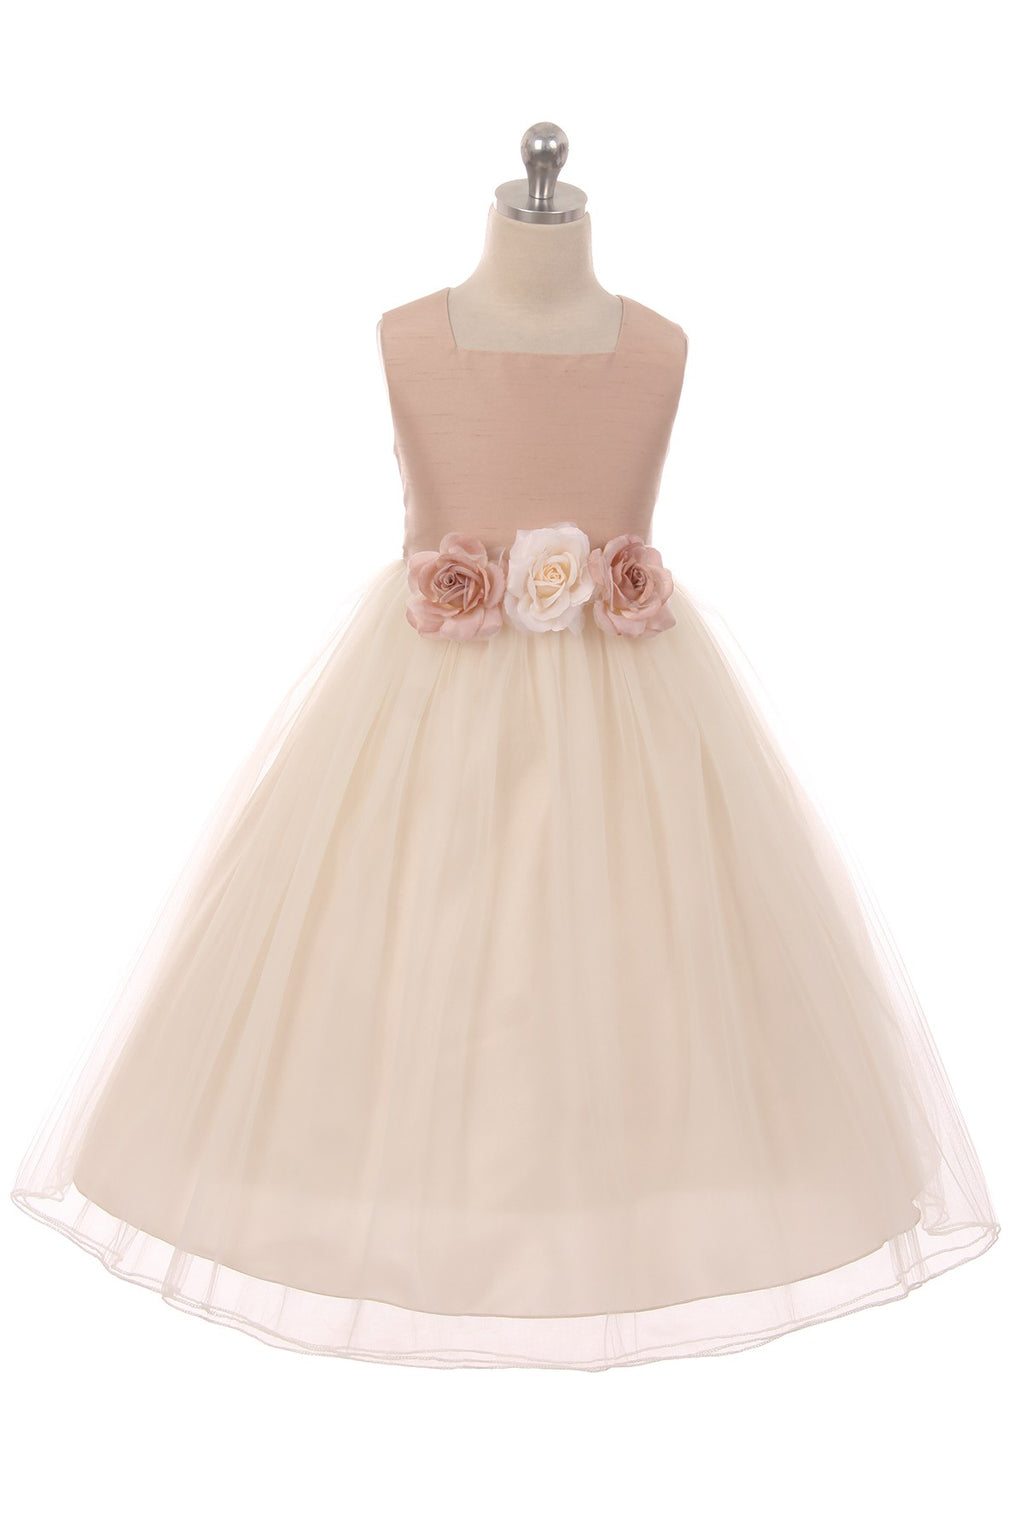 Dusty rose upper, ivory skirt, silk, satin and tulle with 3 flowers at waist